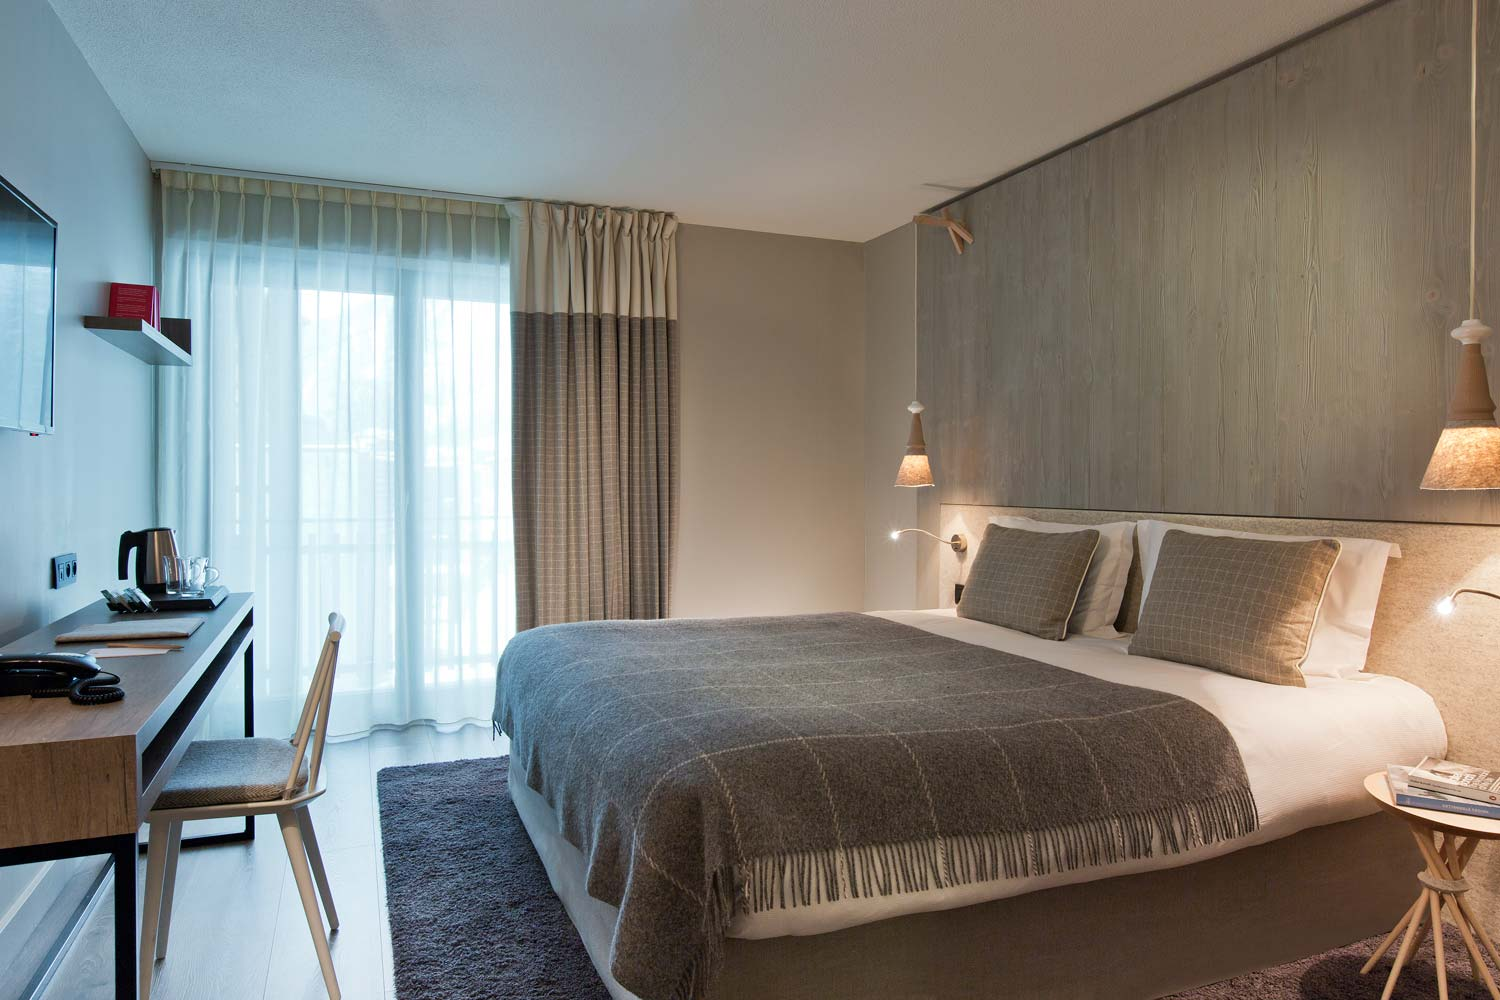 H tel heliopic design confort et volupt chamonix for Design hotels 2015